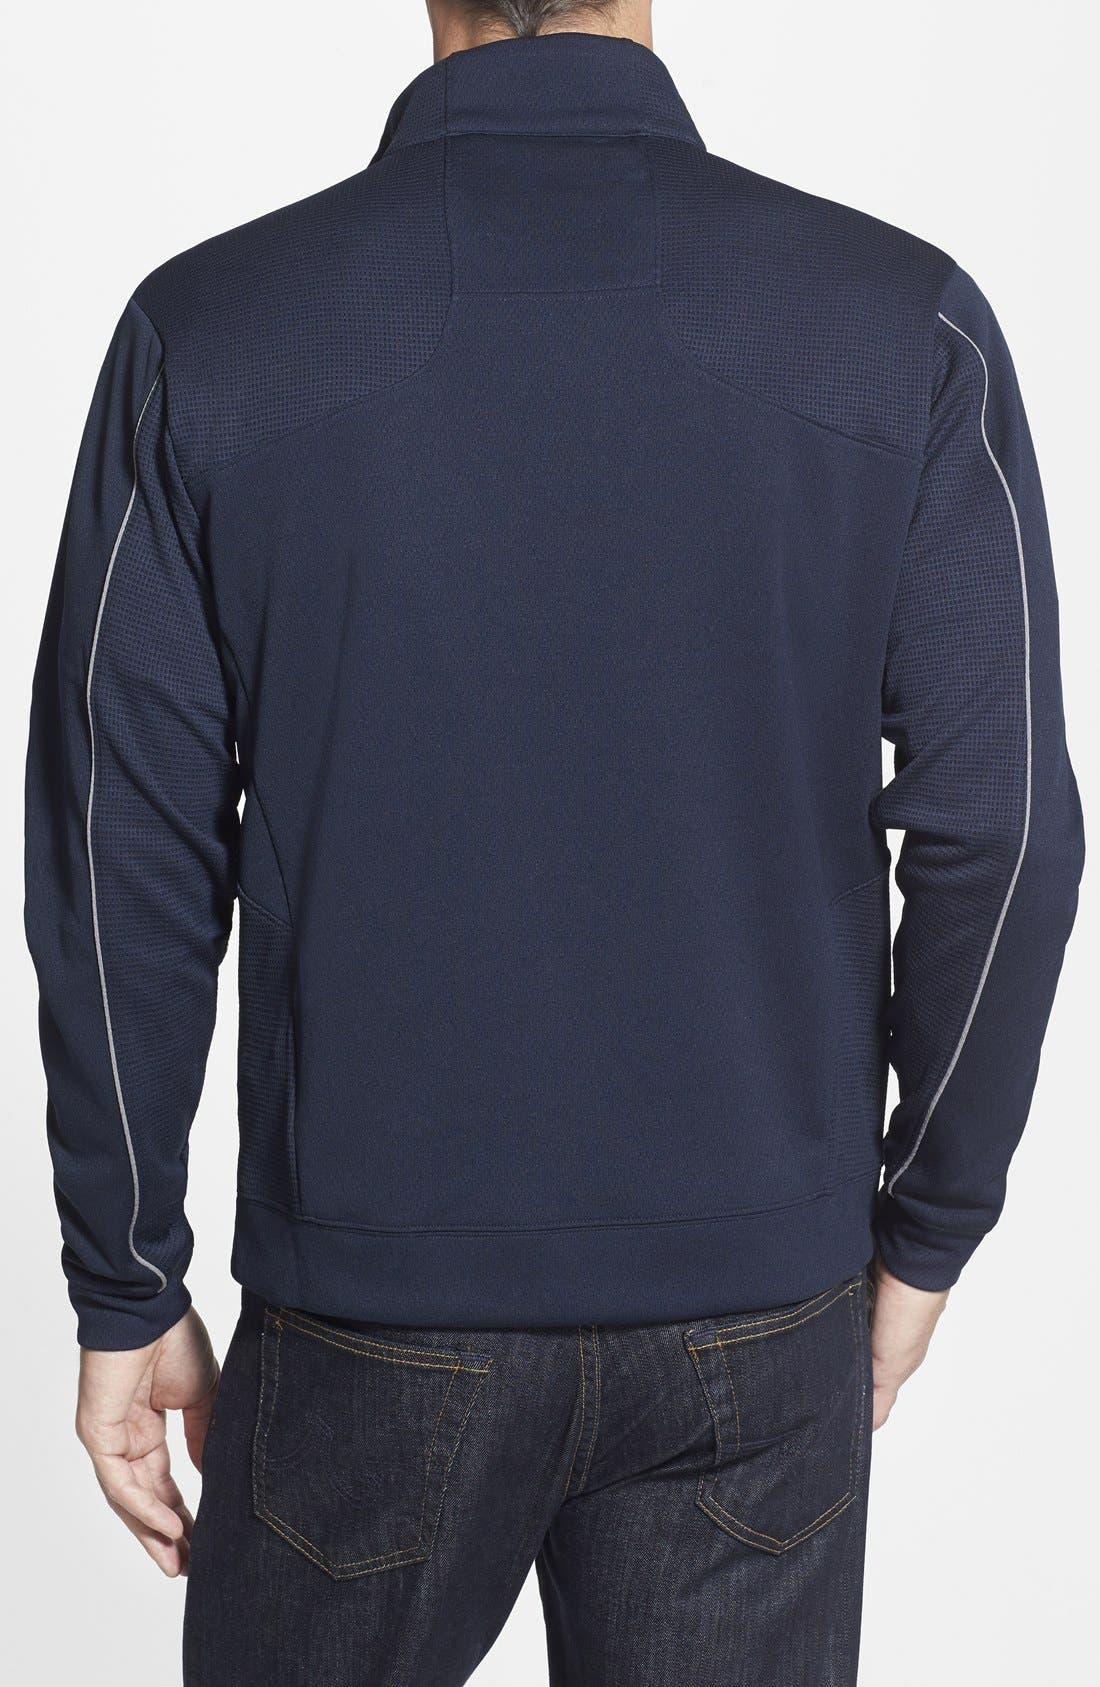 'Denver Broncos - Edge' DryTec Moisture Wicking Half Zip Pullover,                             Alternate thumbnail 2, color,                             420